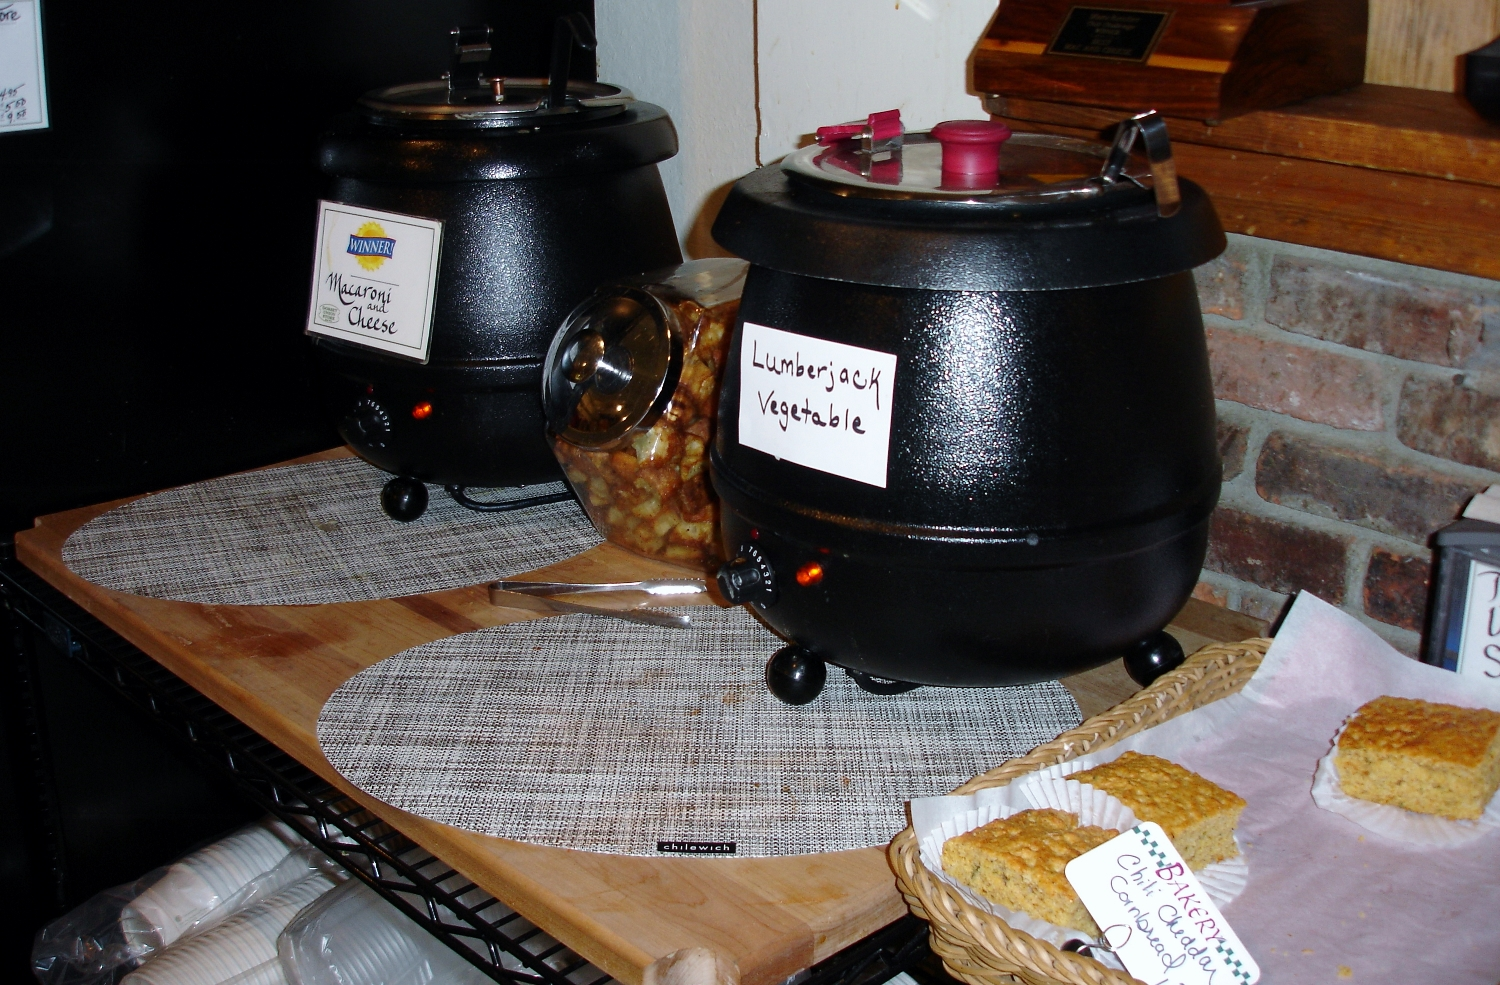 Serve yourself from the soup kettles. One of them is likely to contain their award-winning macaroni and cheese.